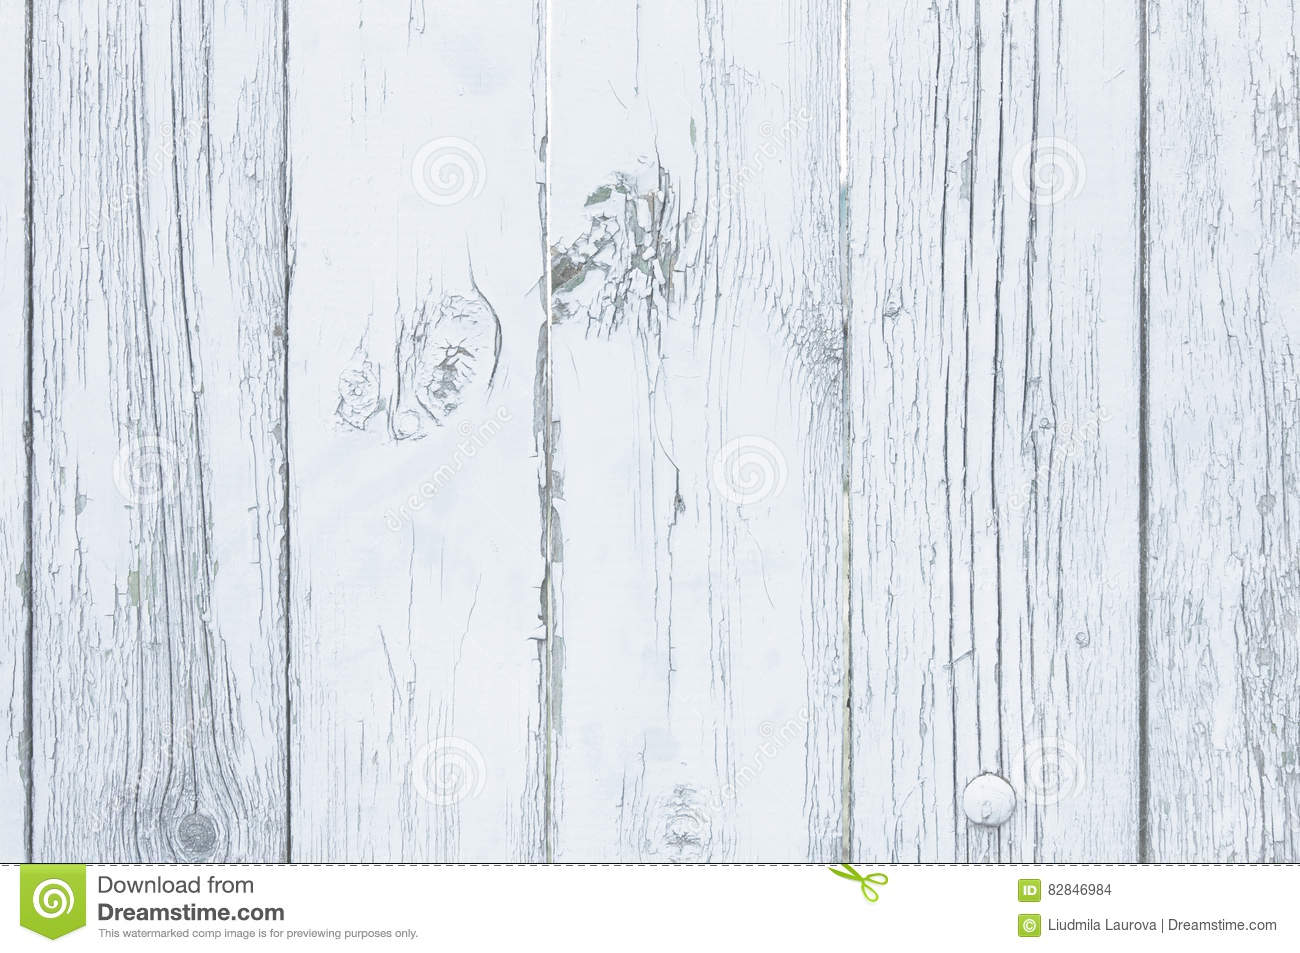 Old vintage white natural wood or wooden texture background or - Background Board Close Copy Cracked Fence Grey Natural Old Paint Panel Peeling Rustic Space Surface Texture Vintage Wood Wooden